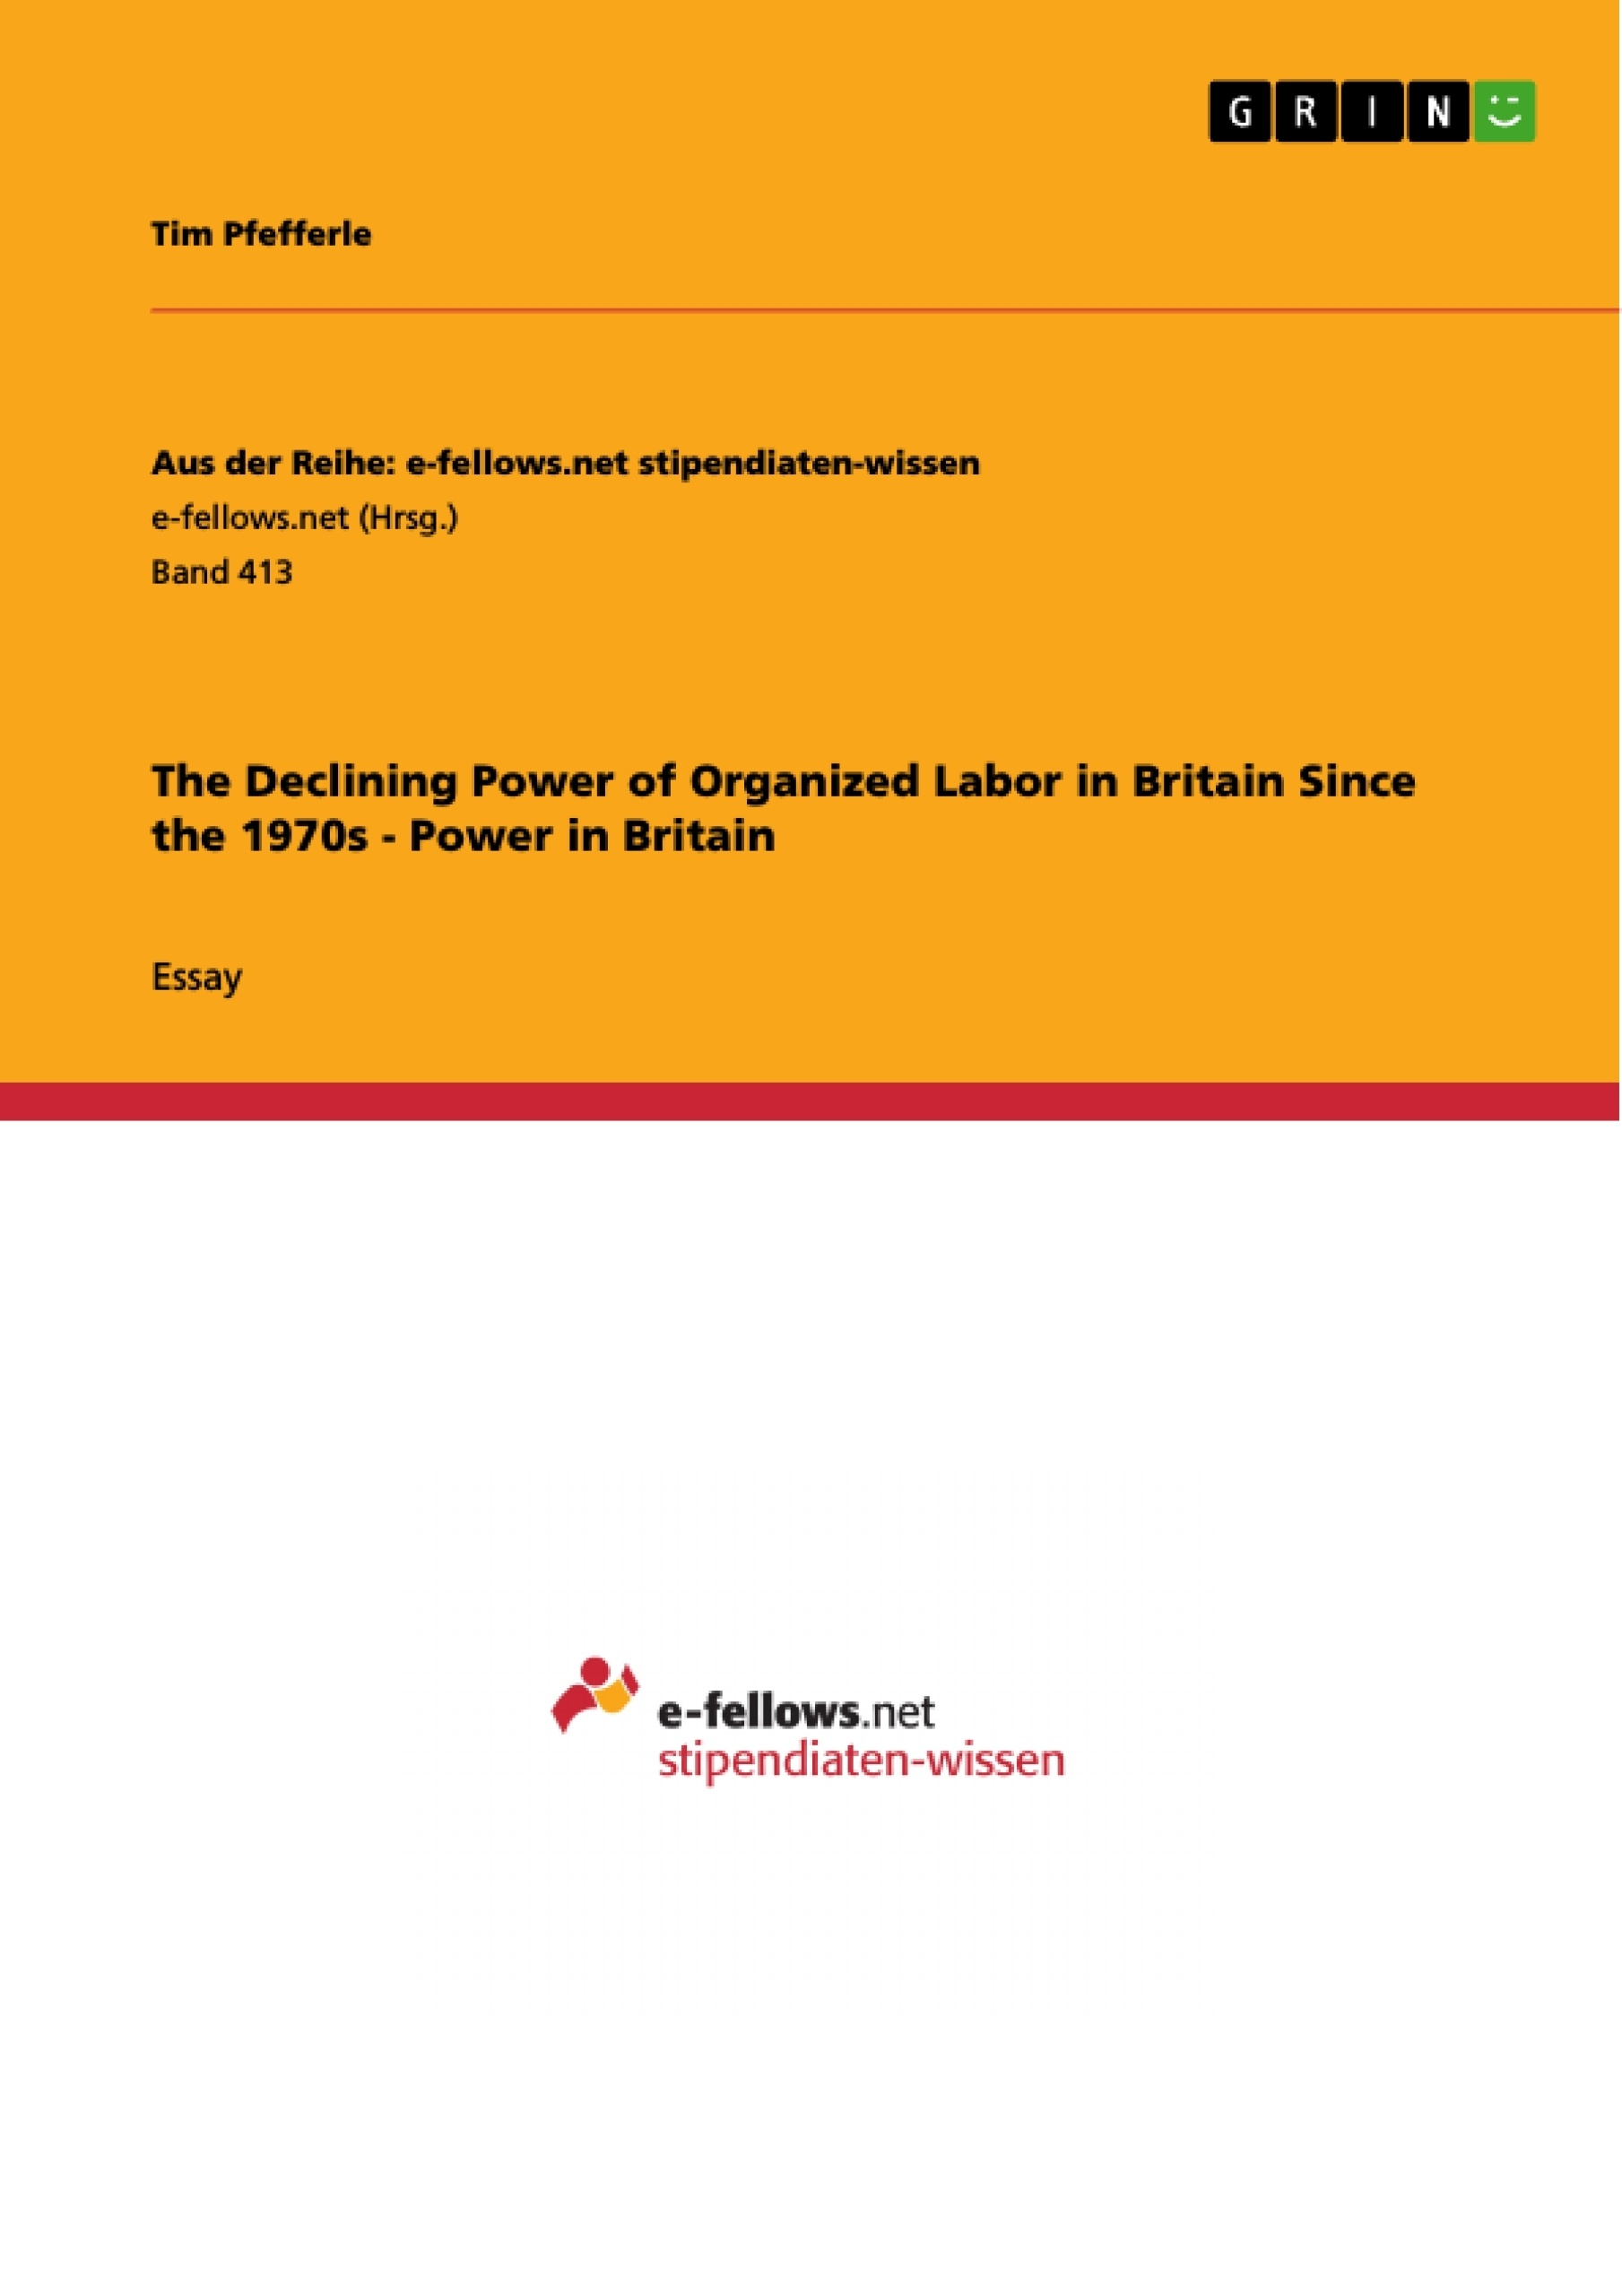 Titel: The Declining Power of Organized Labor in Britain Since the 1970s - Power in Britain